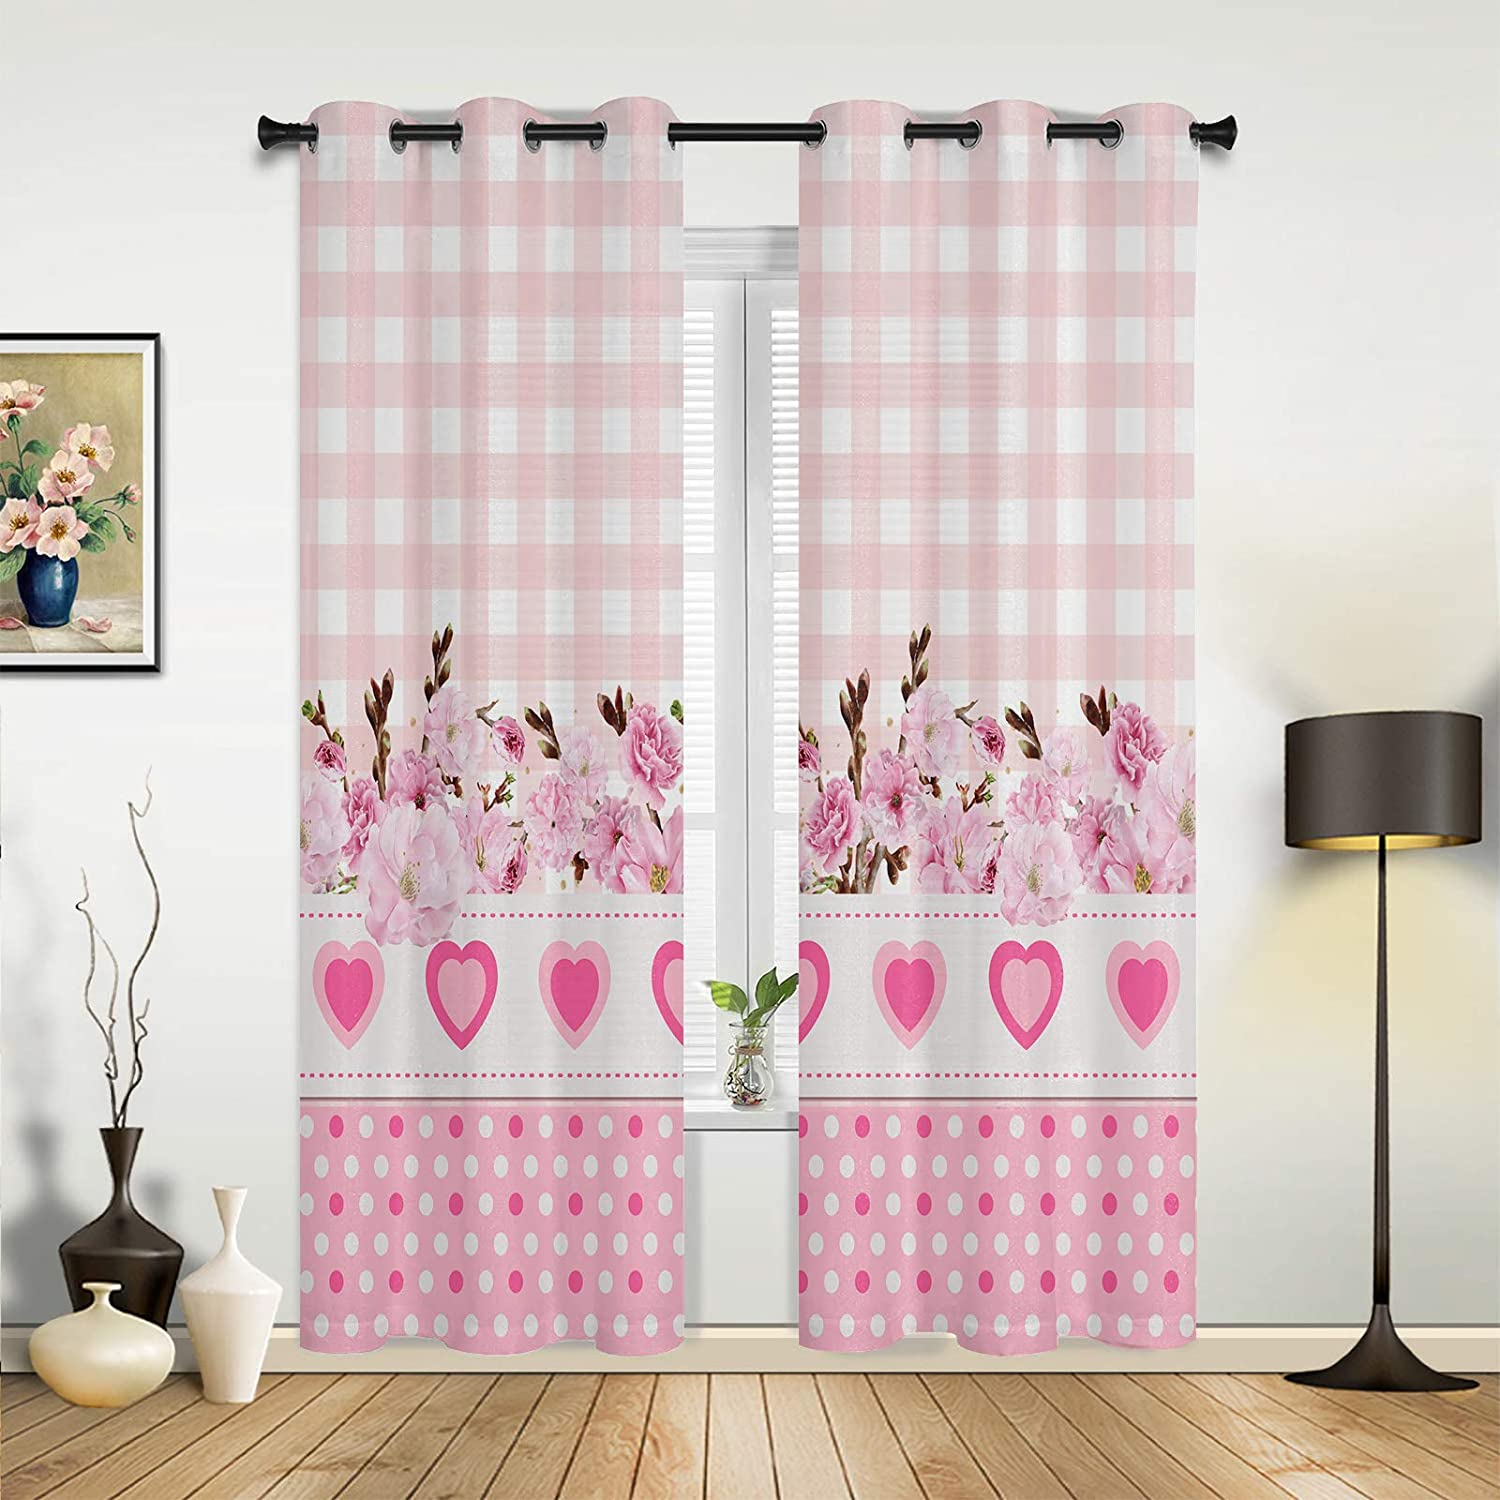 Window Sheer Curtains for Bedroom Very popular New arrival Mother's Pink Happy Living Day